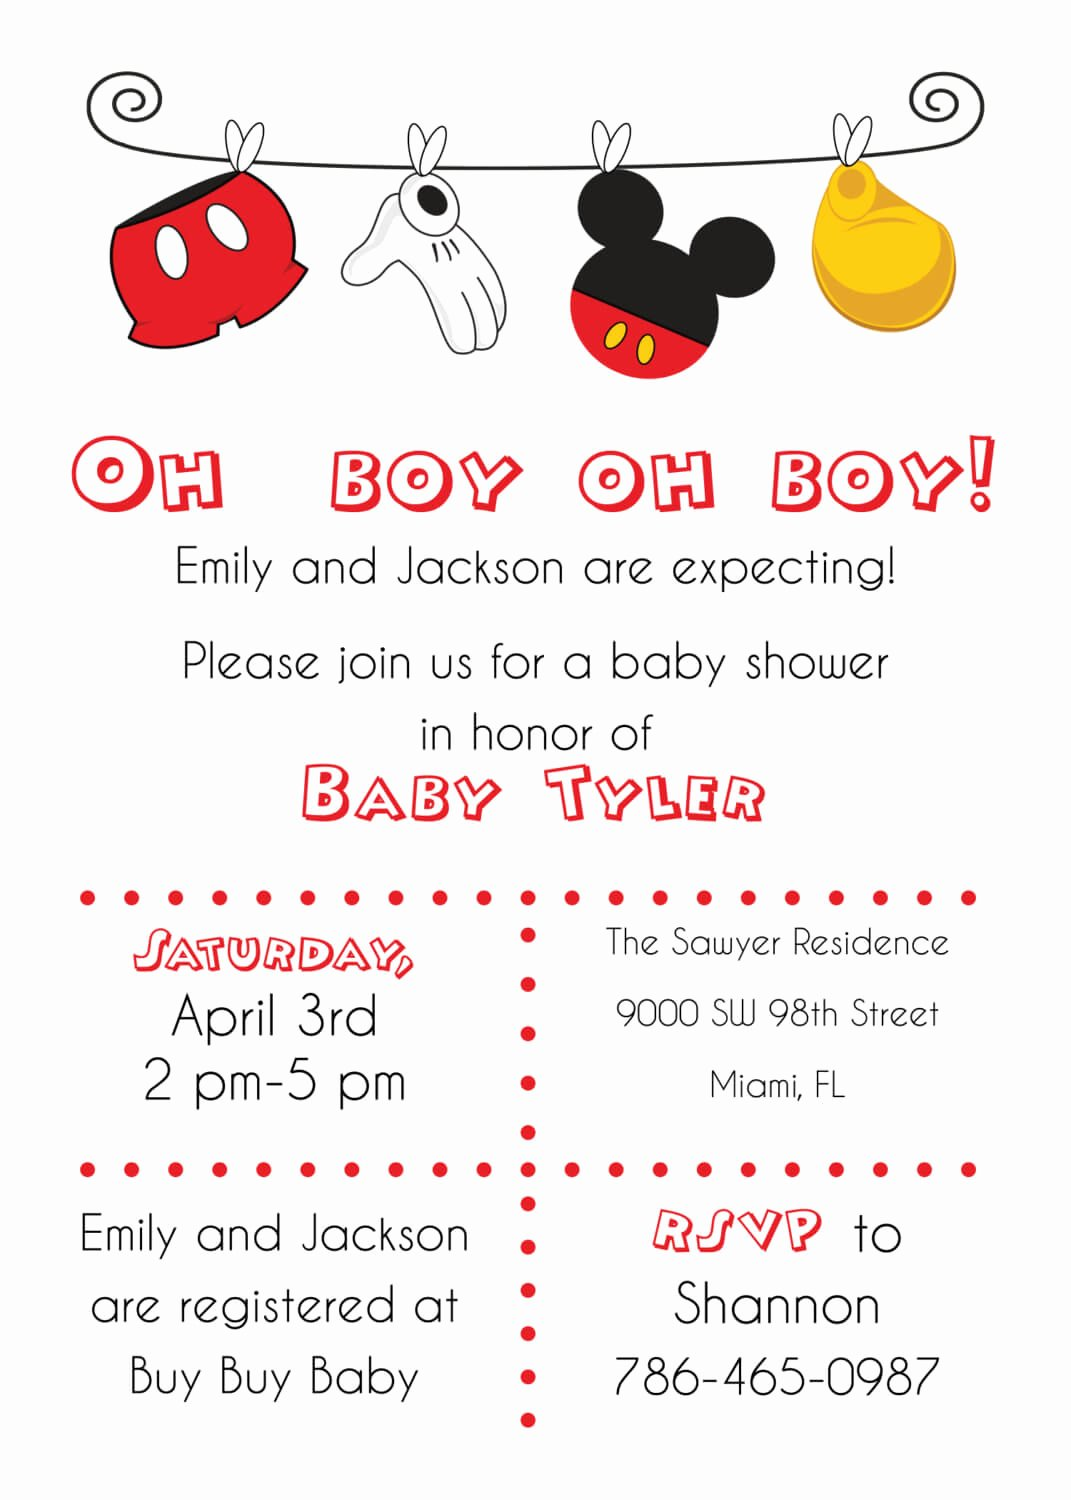 Baby Shower Mickey Mouse Invitations Luxury Disney Baby Shower Ideas Baby Ideas